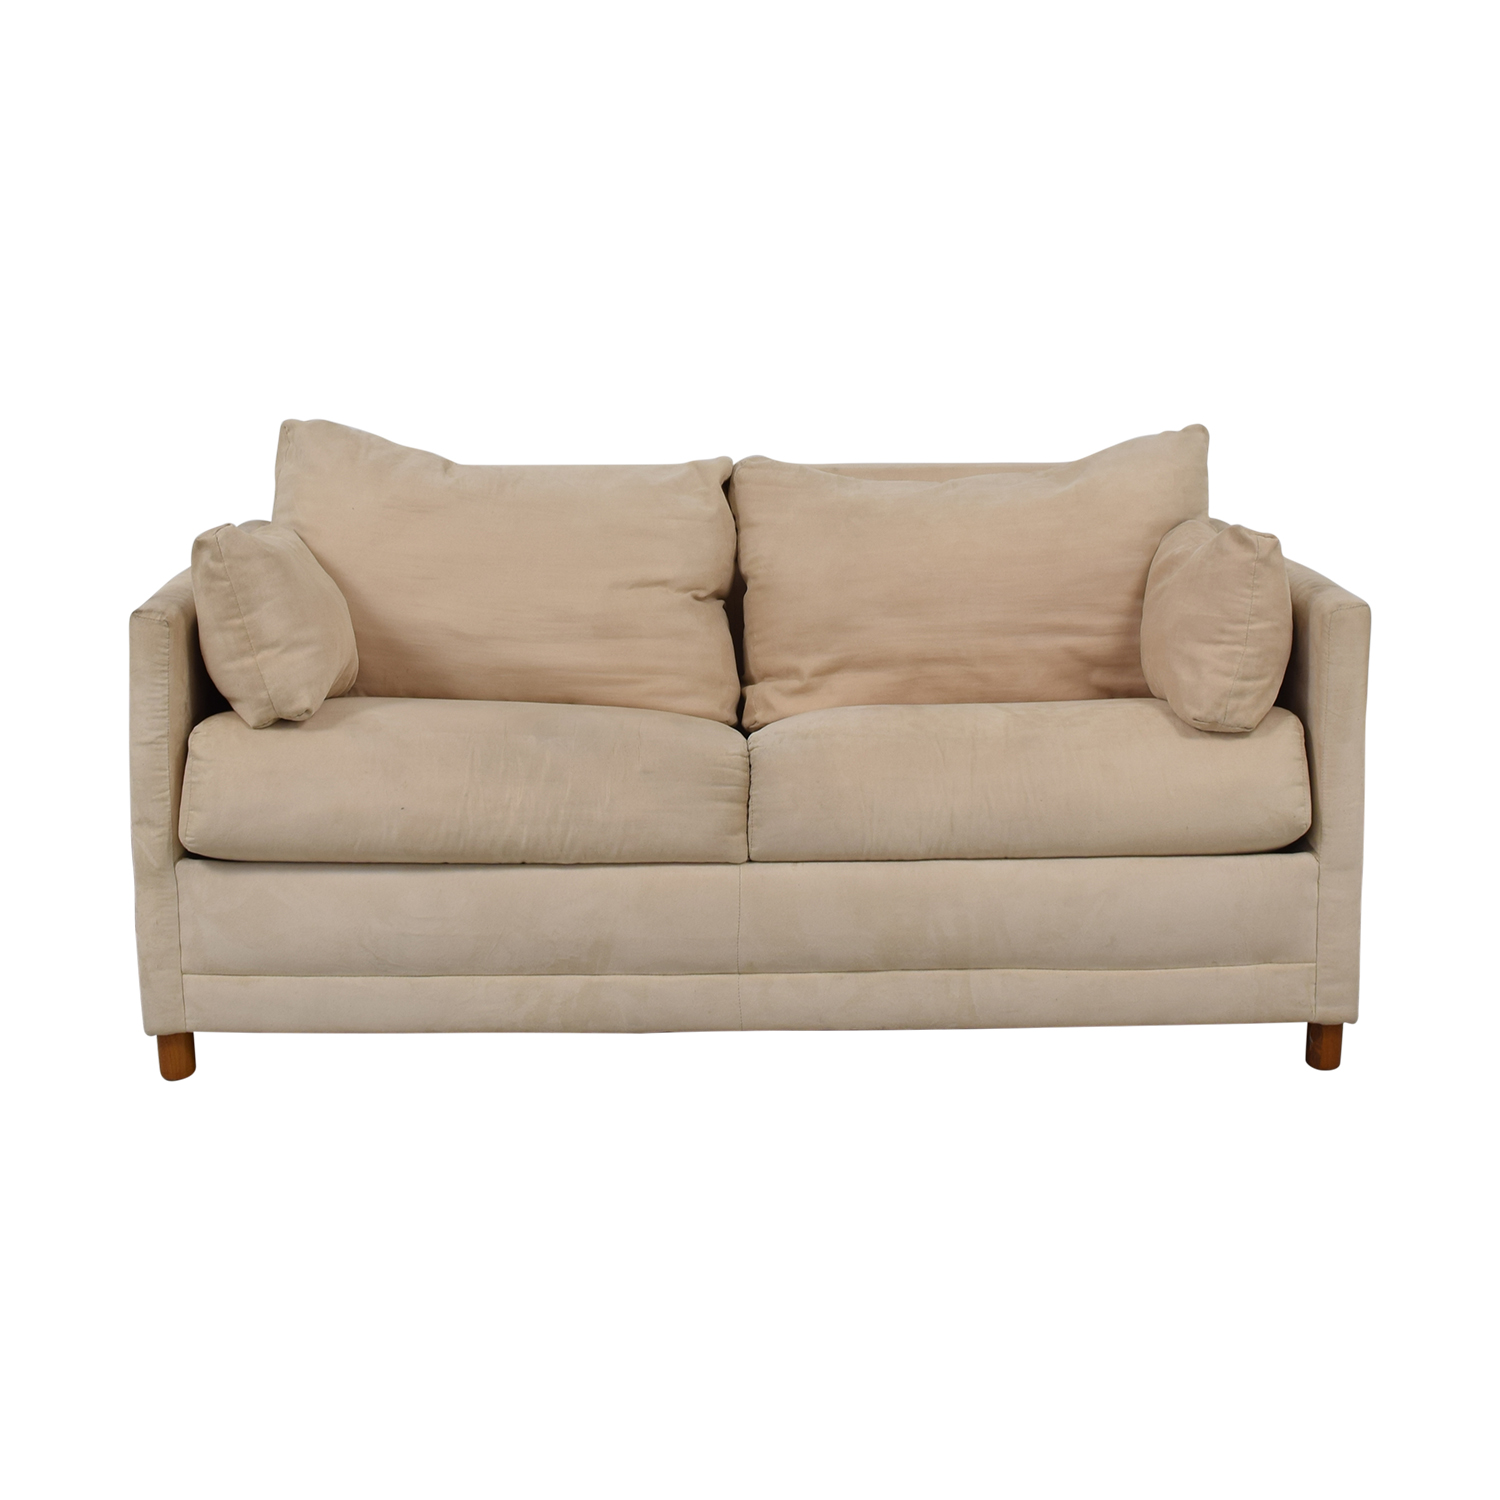 83% OFF - CB2 CB2 Beige Two-Cushion Convertible Sleeper Sofa / Sofas